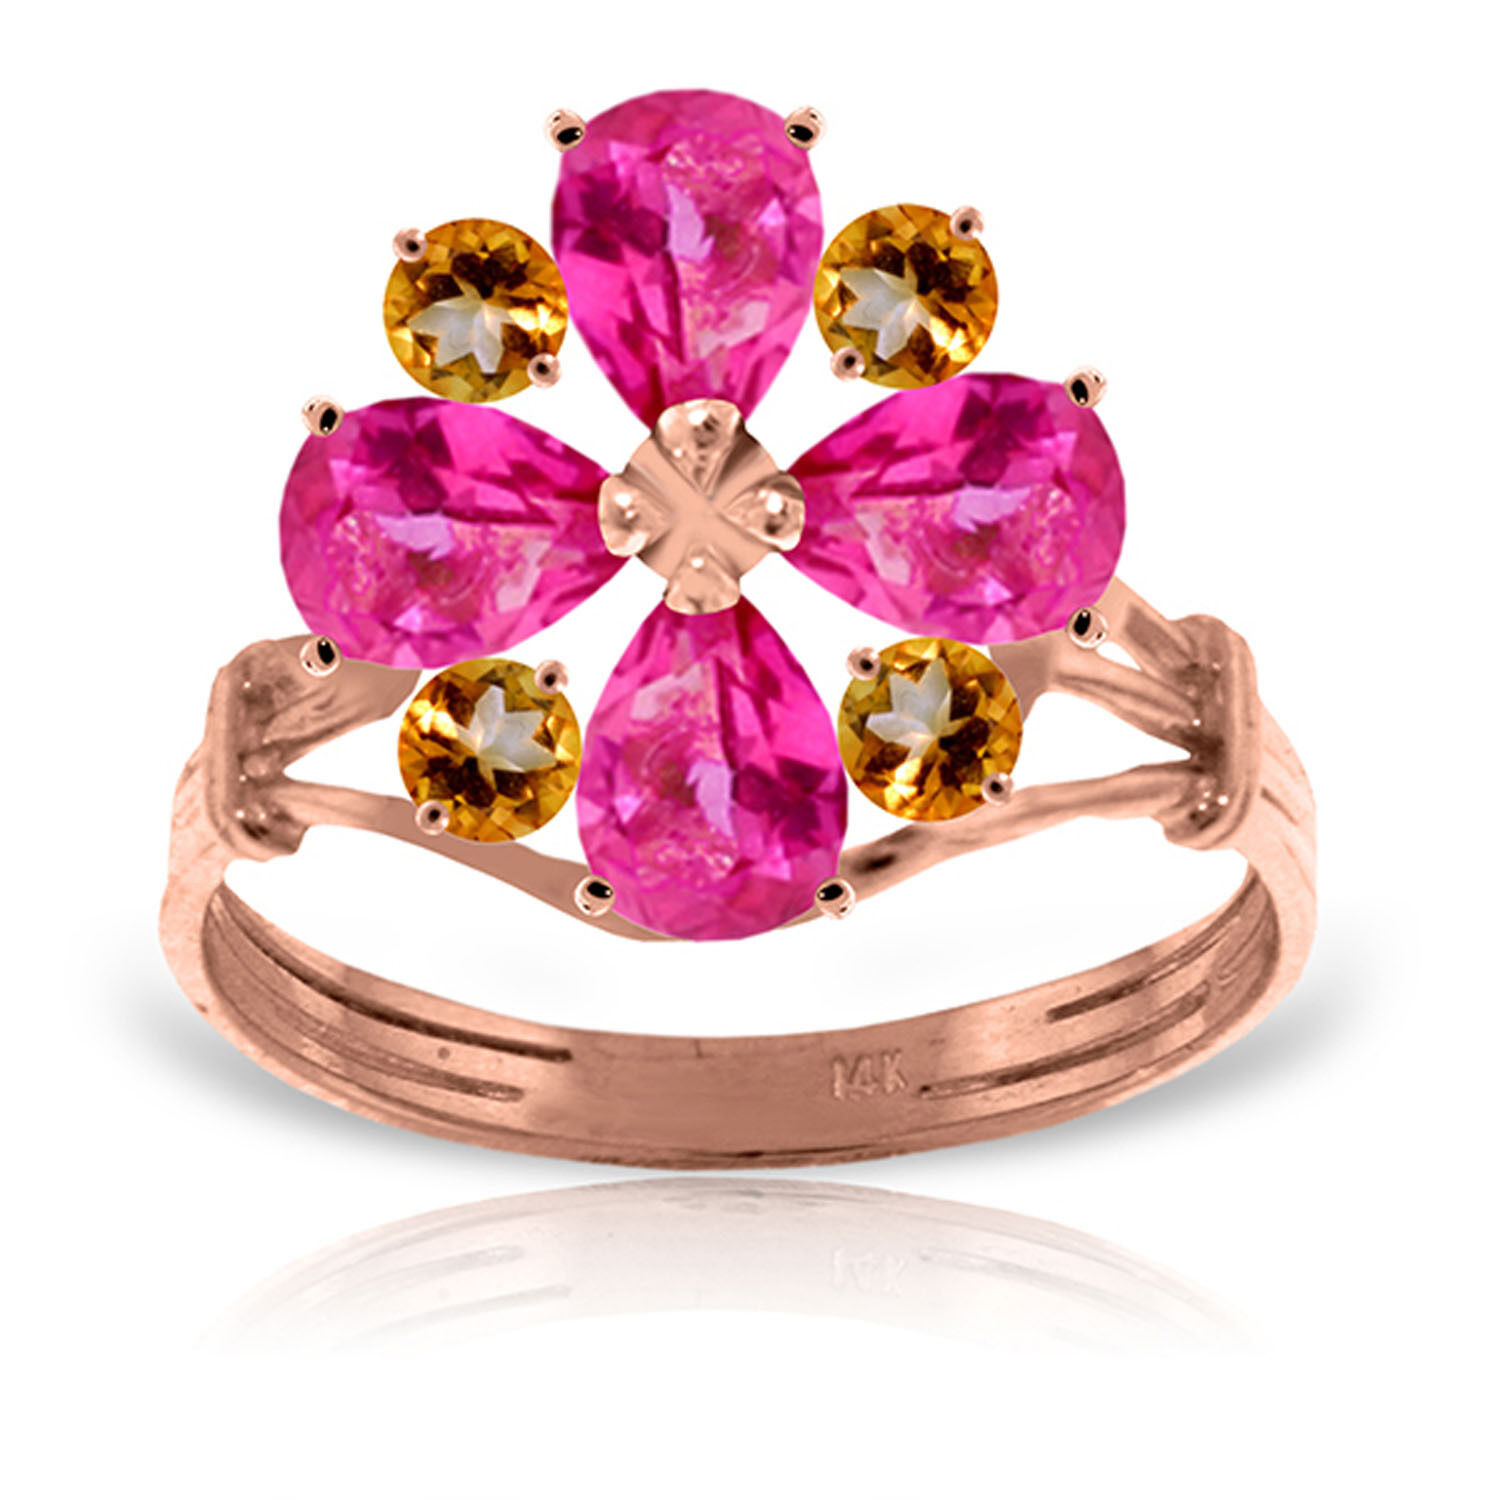 Brand New 14K Solid pink gold Ring with Natural Pink Topaz & Citrine